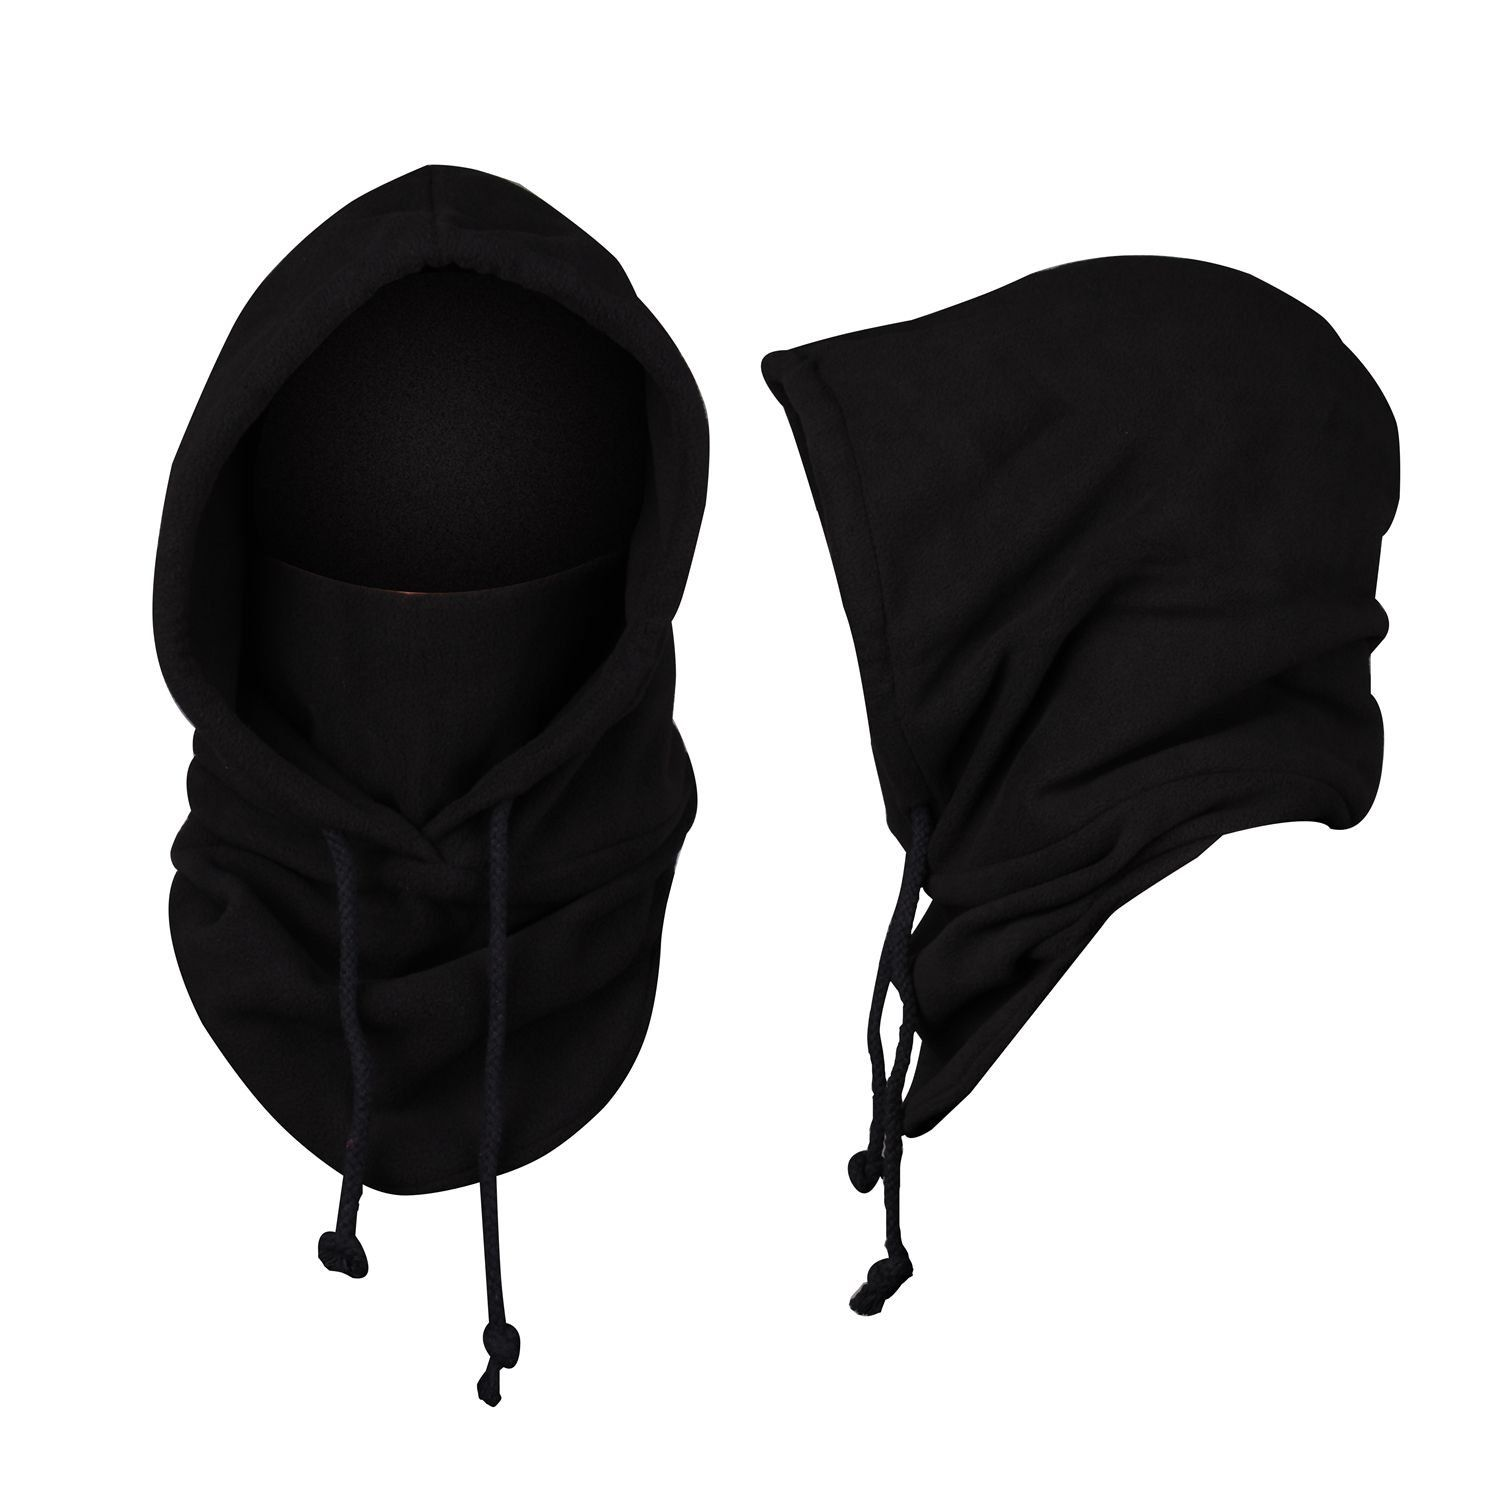 JIERKU Mens Balaclava Mask Black ski Mask Thermal Hats Black Winter ...